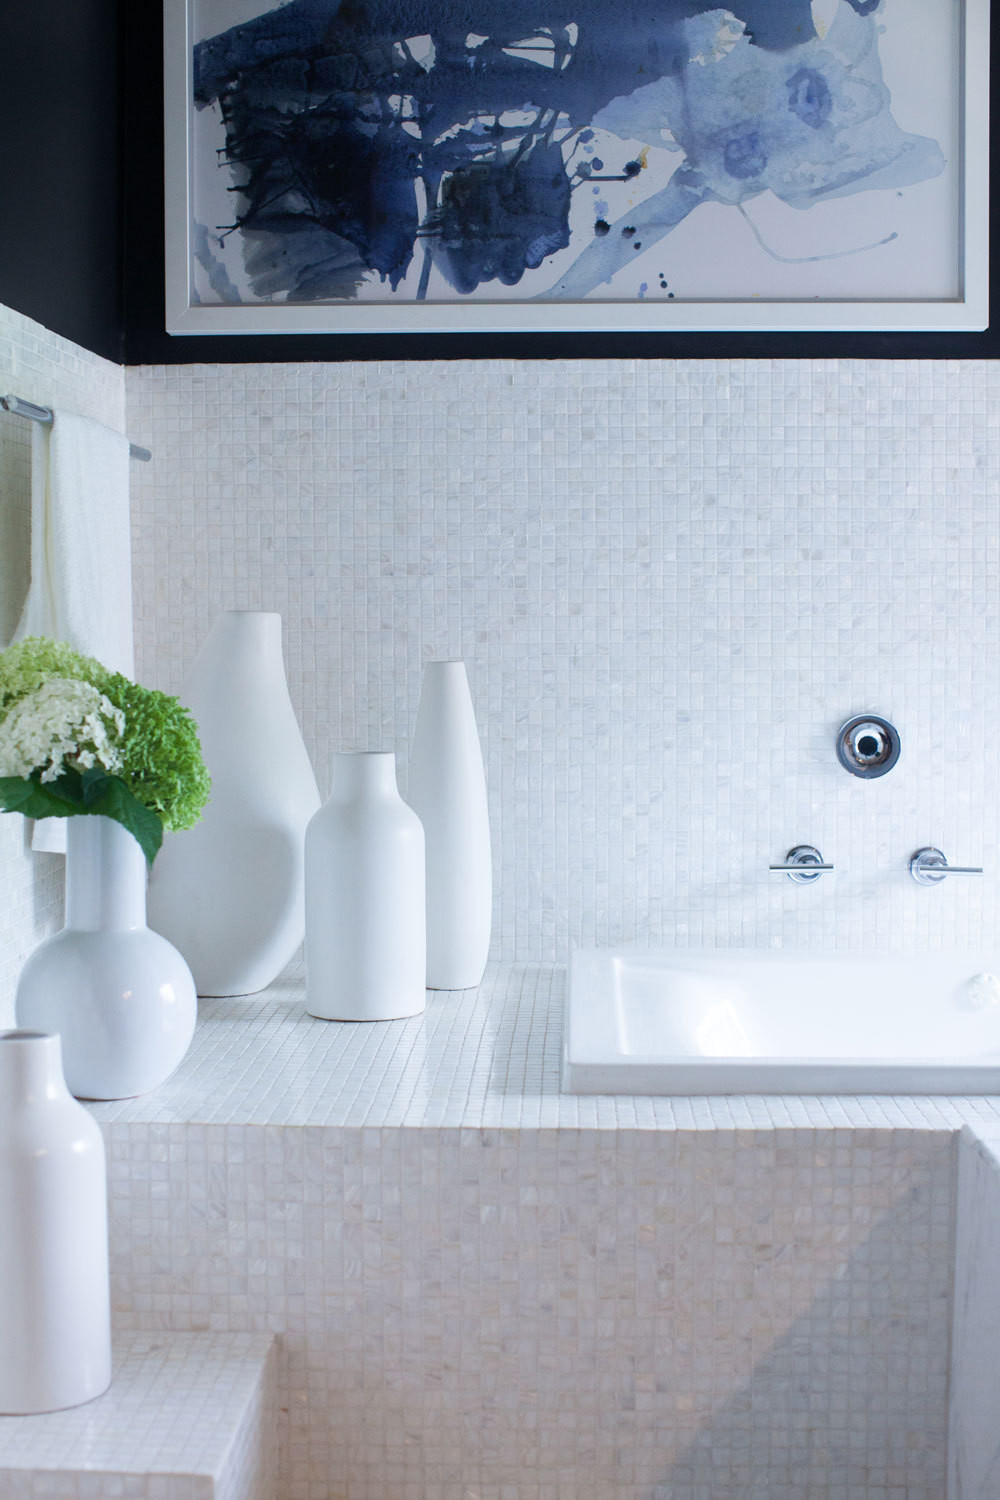 Choosing Tile for Your Bathroom? Read This. - Decorating - Lonny